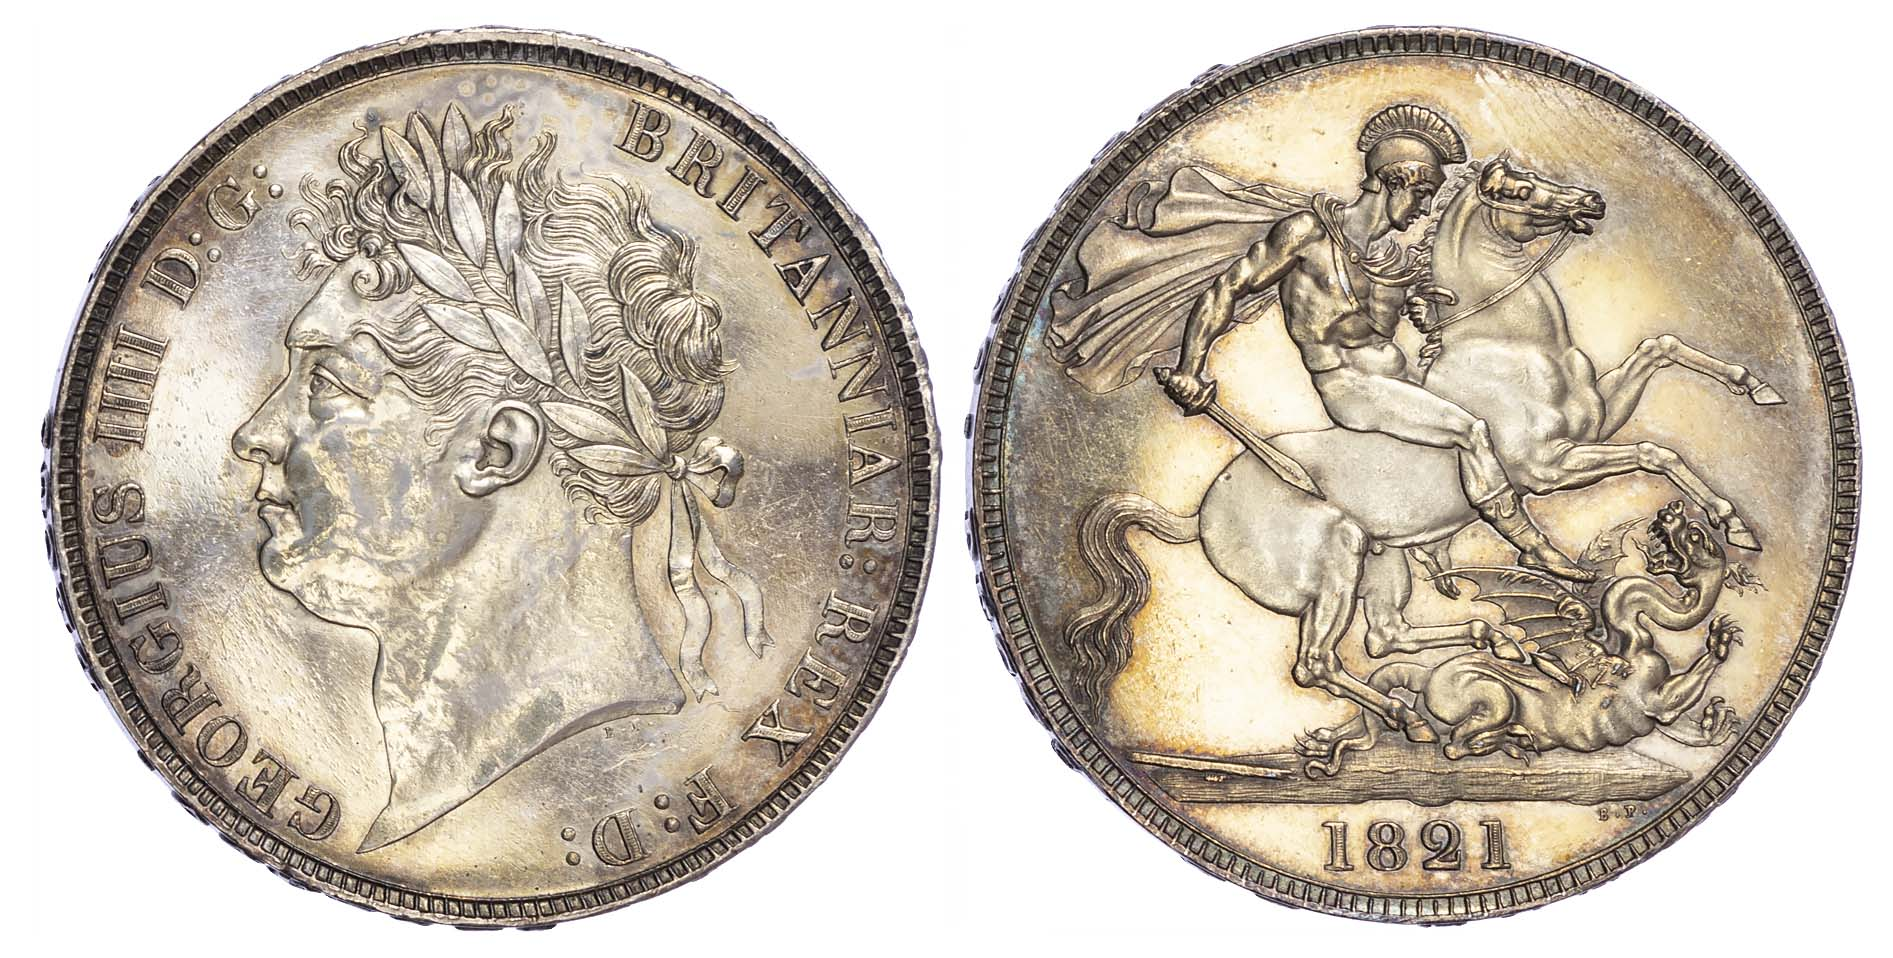 George IV (1820-30), Proof Crown issued in 1821, raised Secundo edge